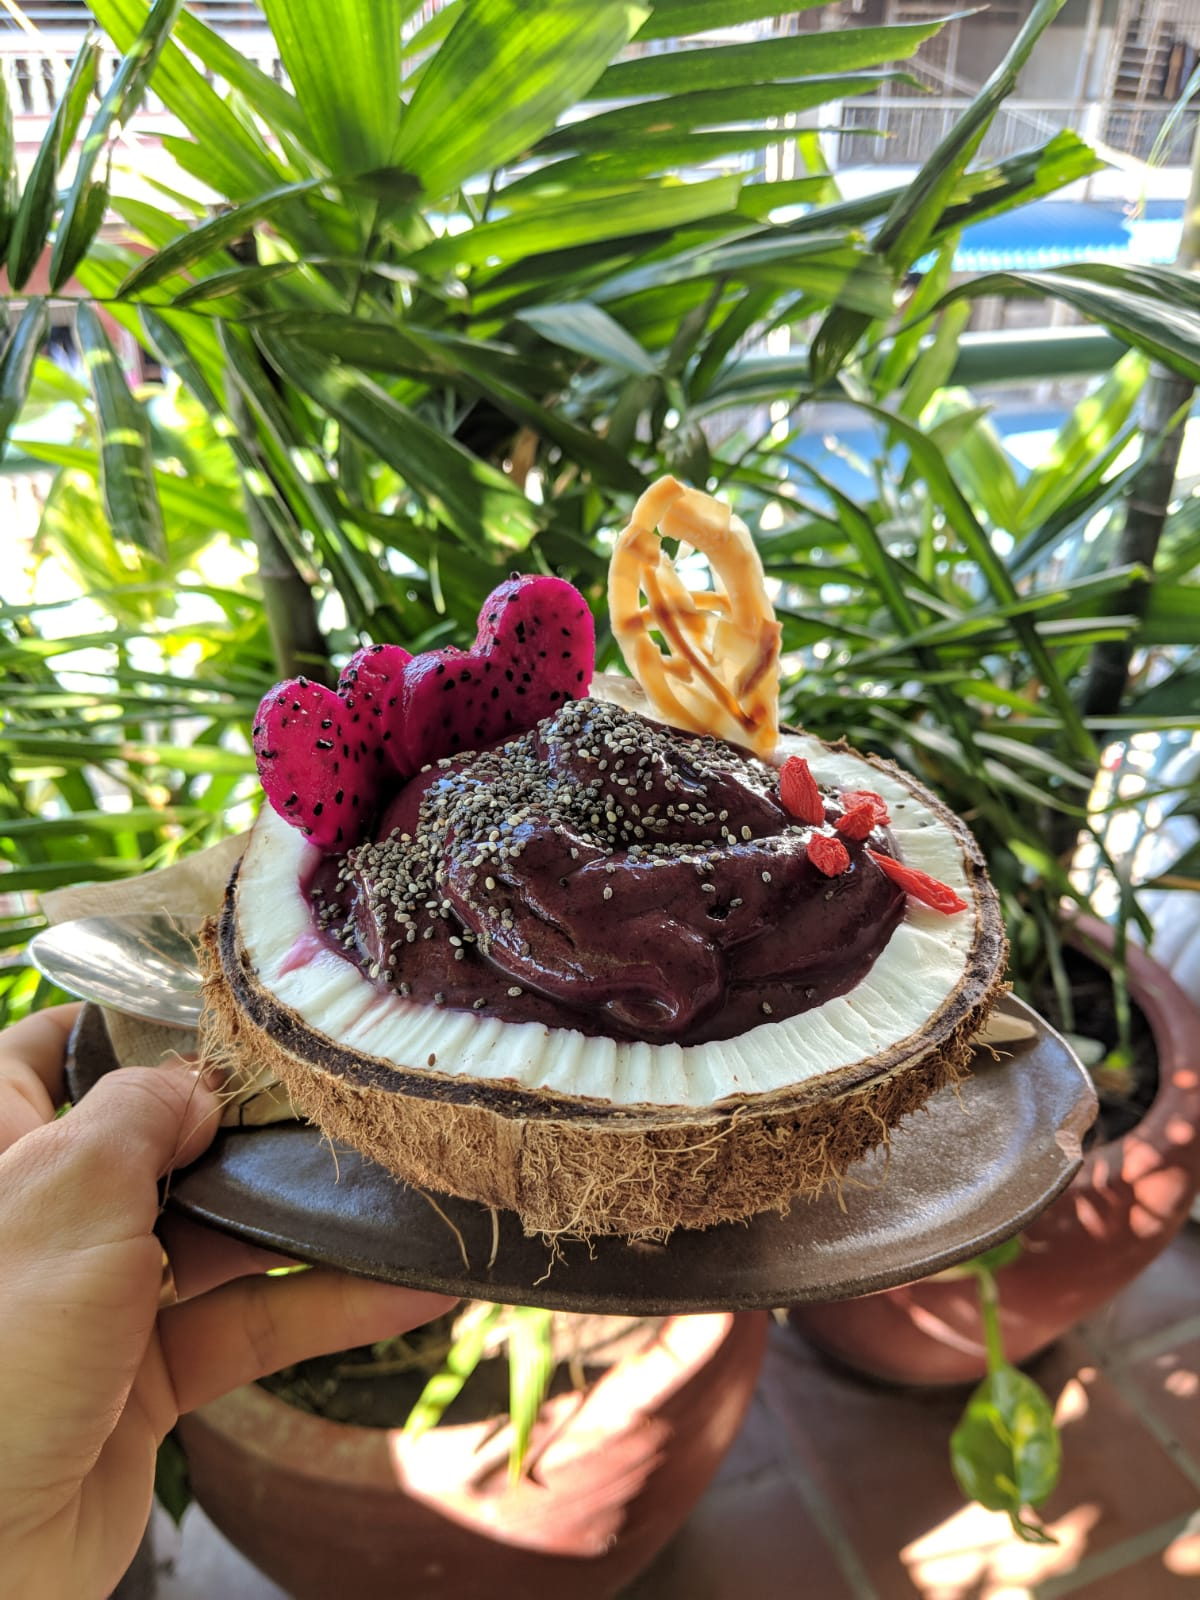 We managed to find Açai in Vietnam while traveling with  Hands on Journeys  at the  Vibe Cafe Asia